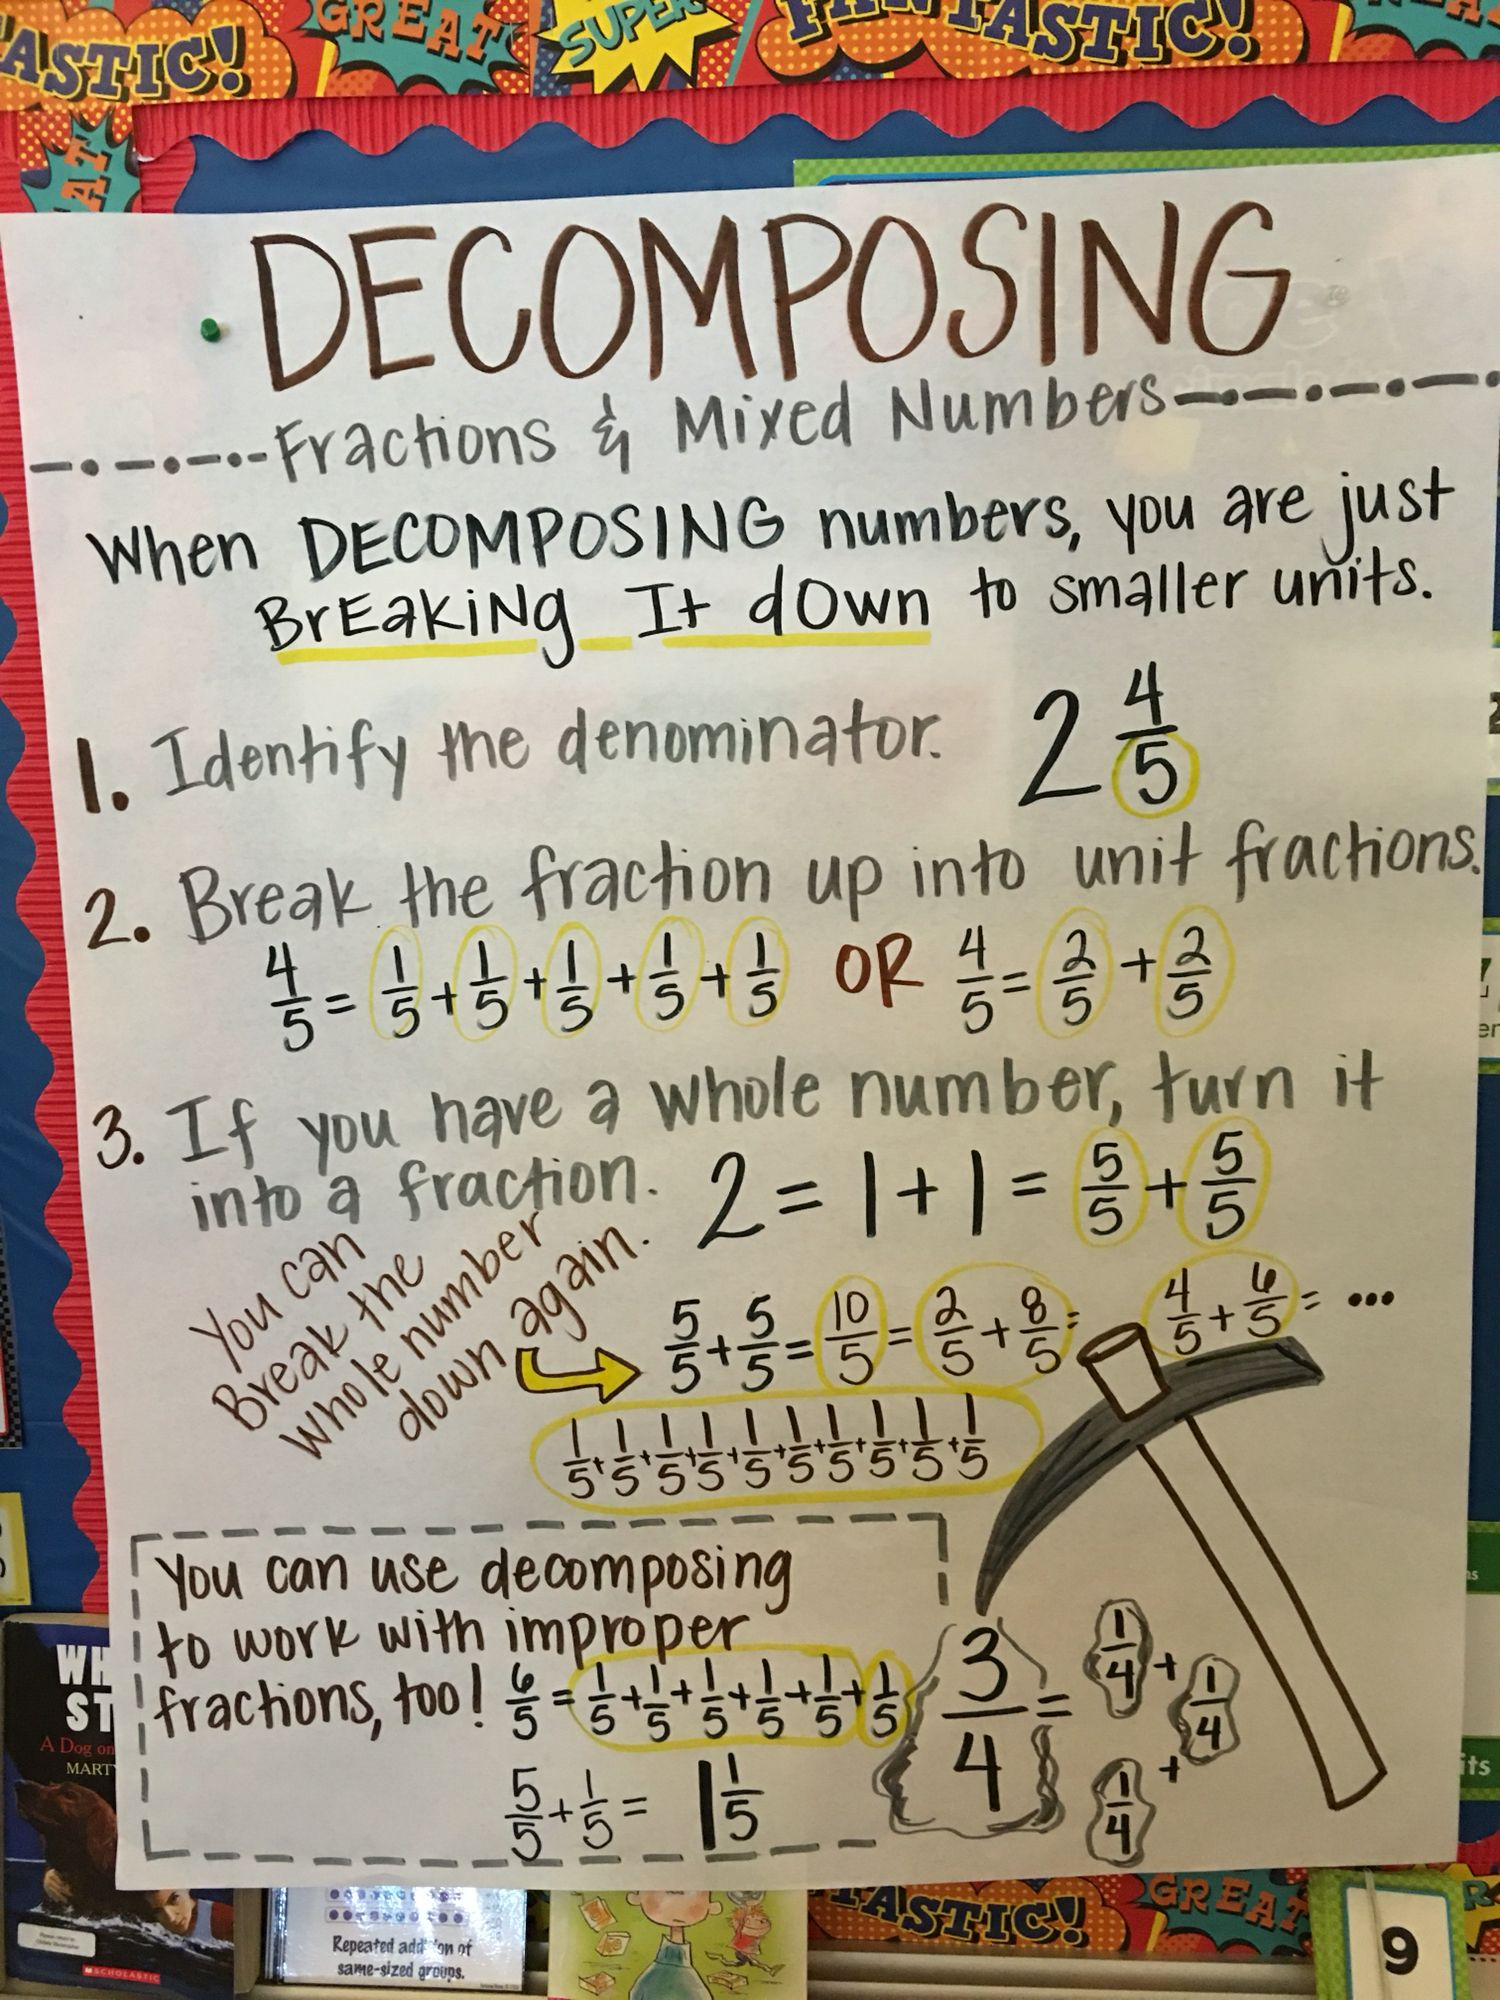 anchor chart for decomposing fractions by christy hughes, yes the